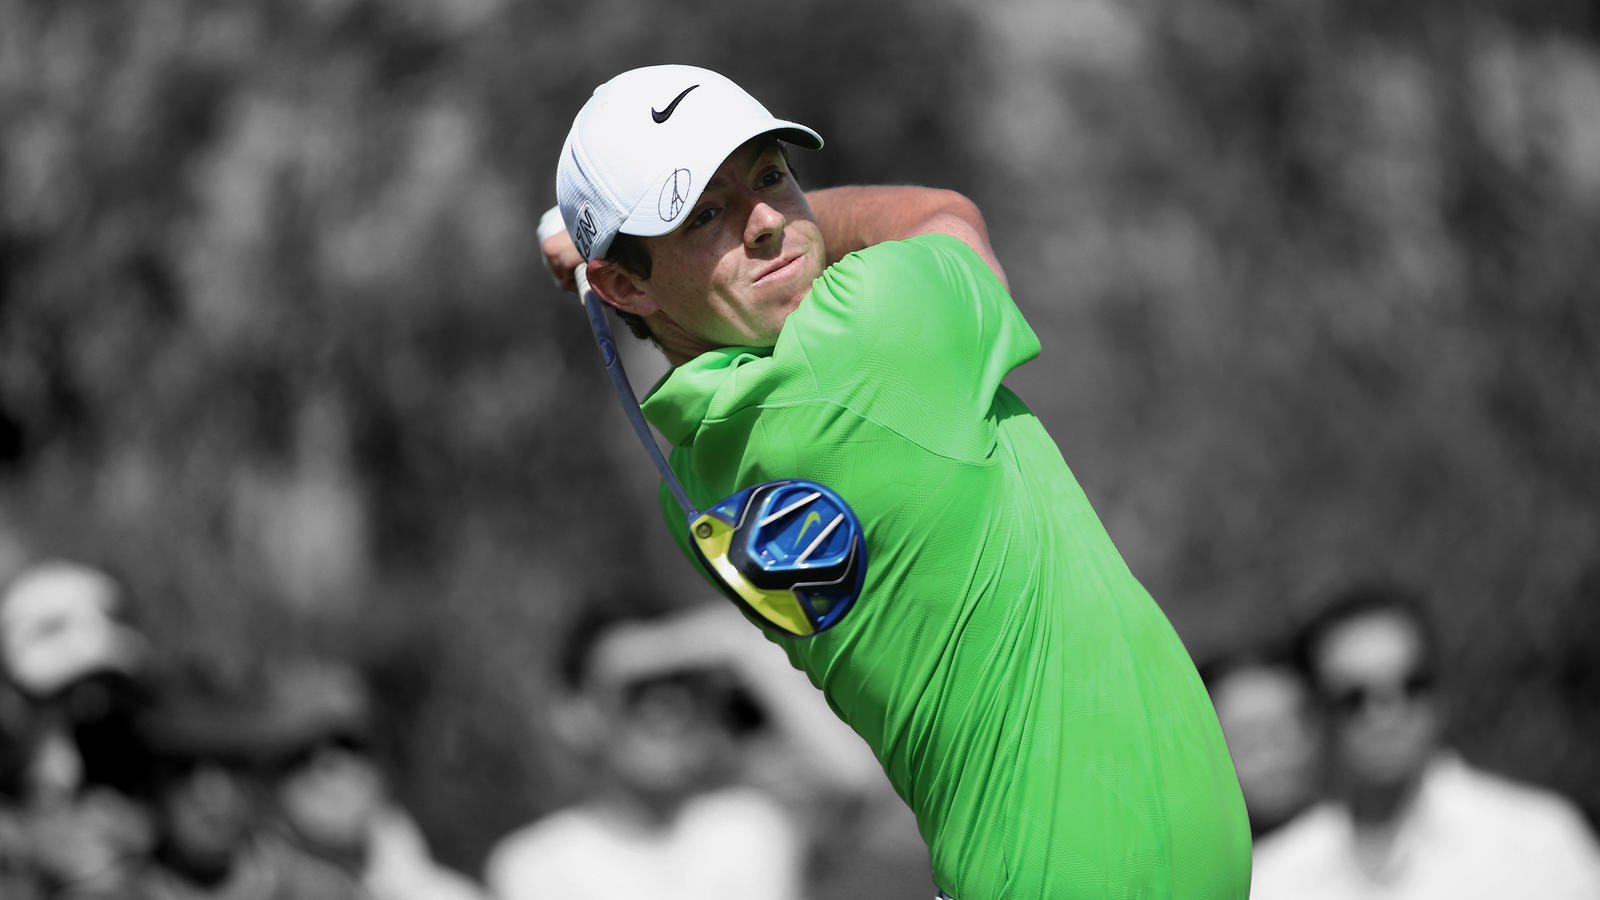 Nine Months On From His First Victory Of The 2015 Season Nike Athlete Rory McIlroy Concluded Campaign With Another Win In Dubai This Time At DP